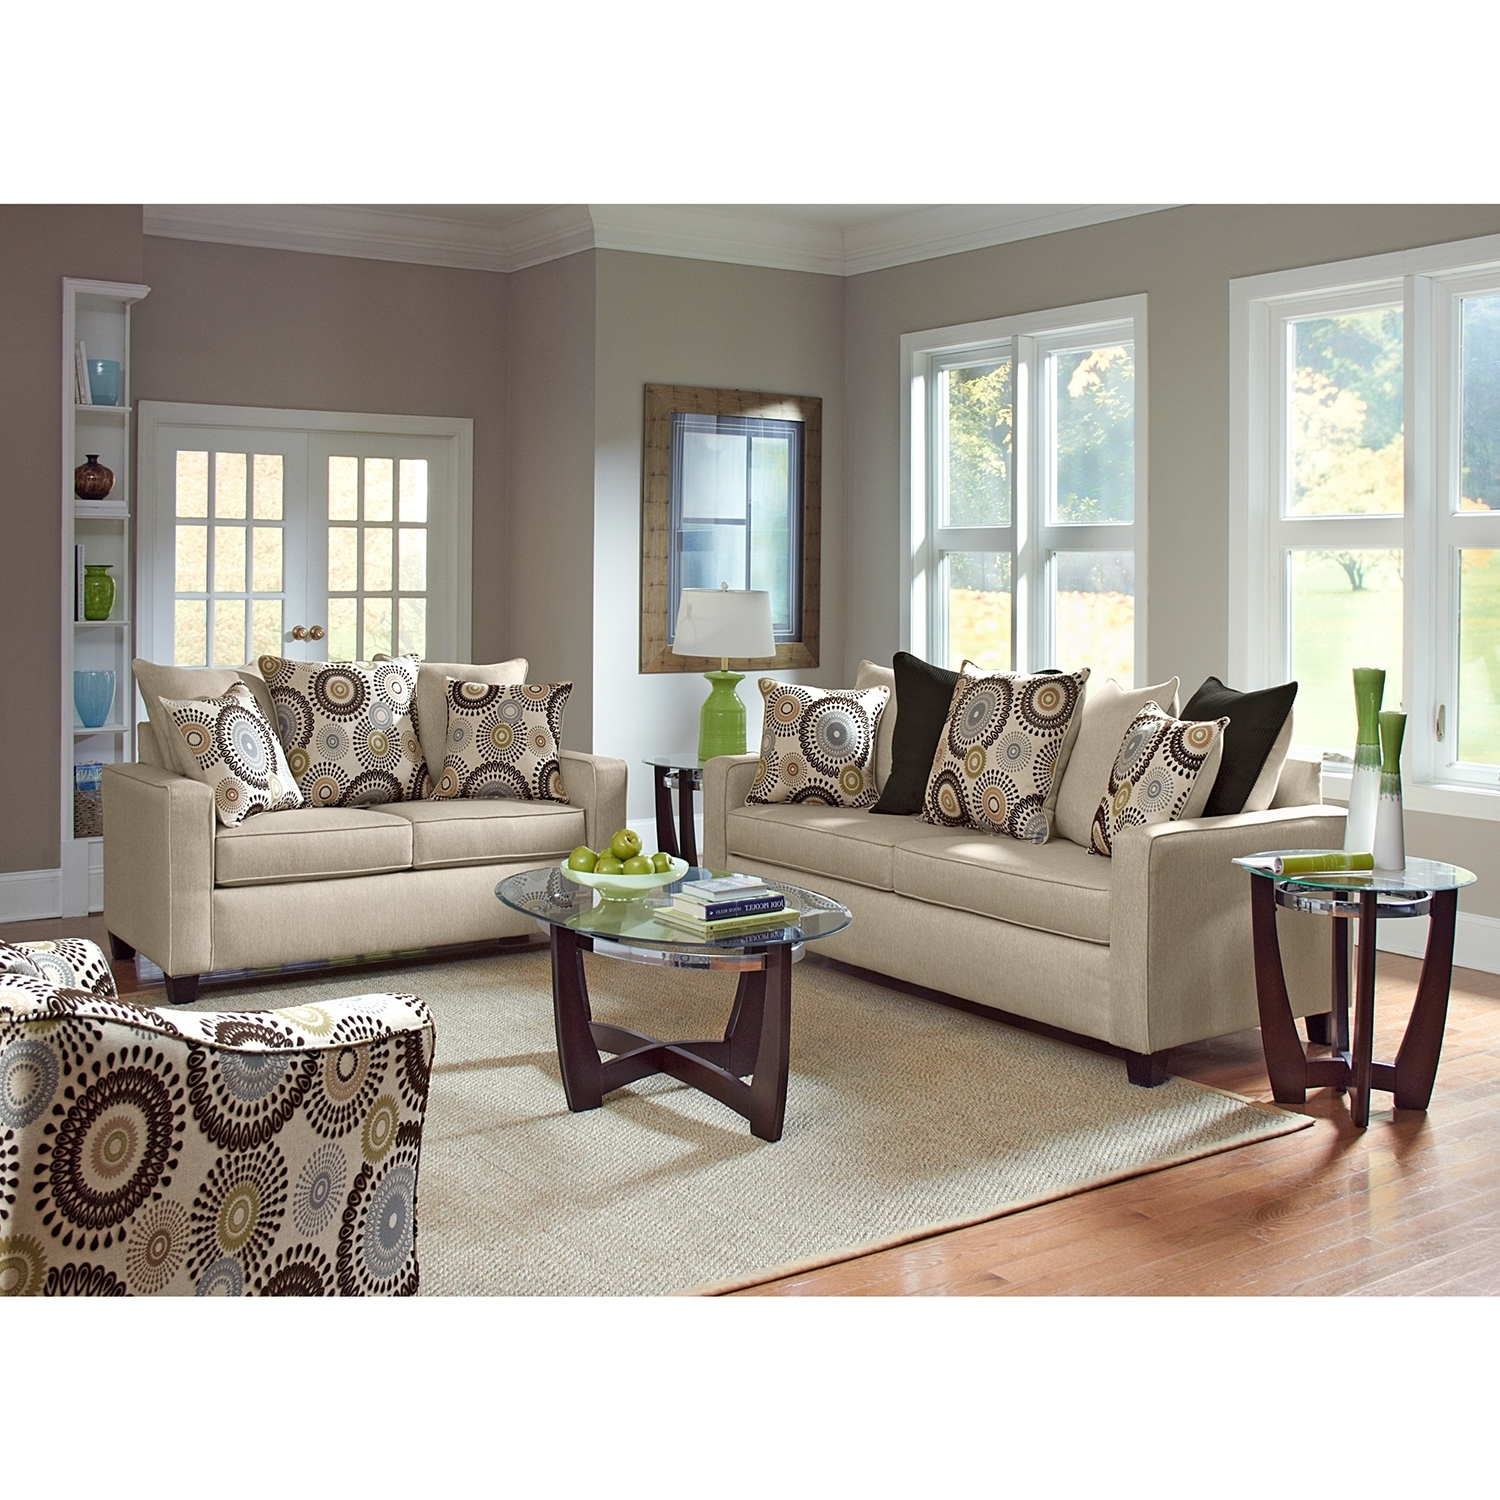 Value City Sofas Within Favorite Livingroom : Value City Furniture Living Room Chairs Tables Sofas (View 11 of 20)